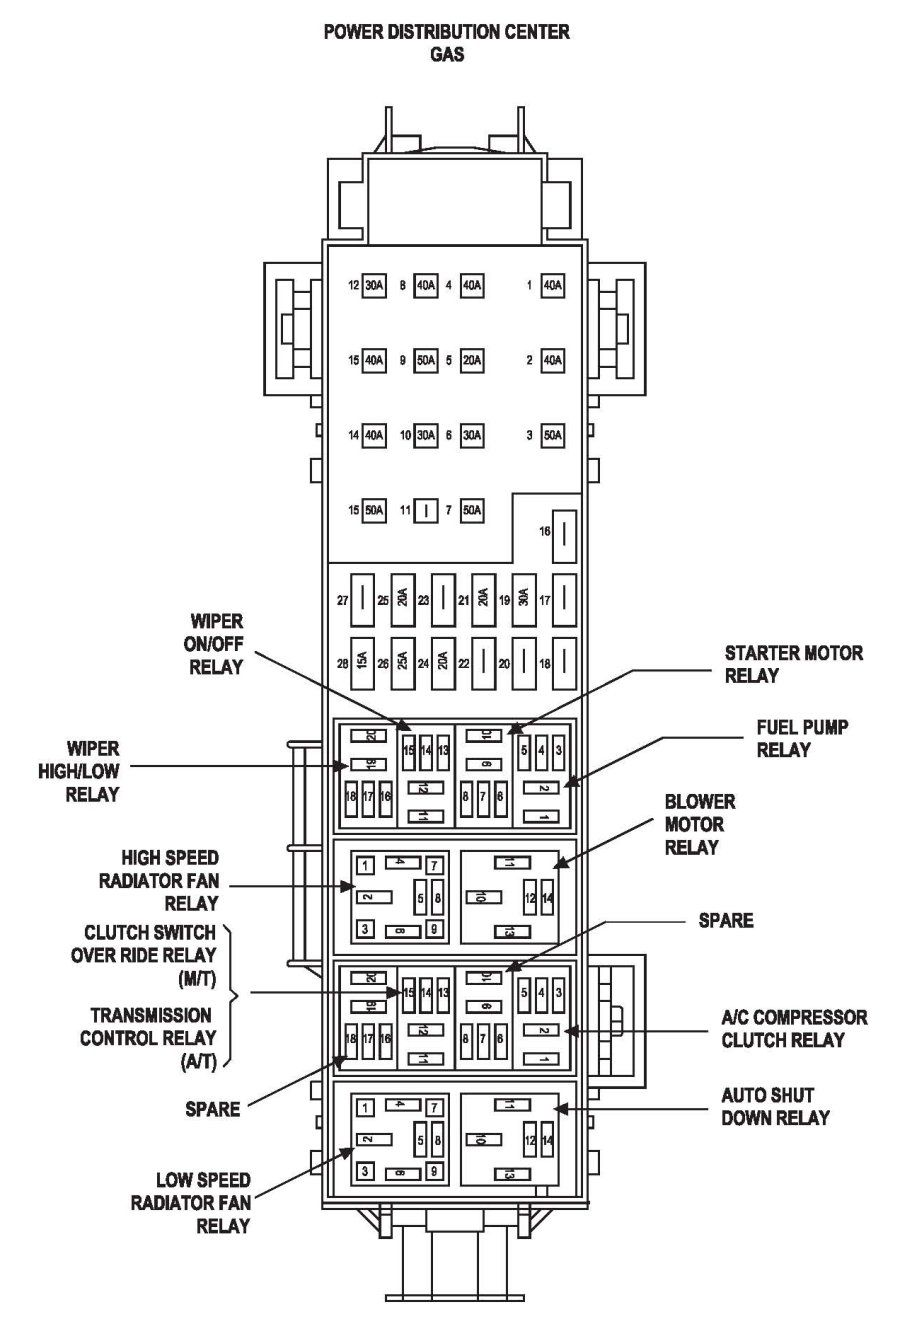 b3536c3739783eb19f827744cc42c3c4 jeep liberty fuse box diagram image details jeep liberty 2007 jeep liberty fuse box diagram at n-0.co